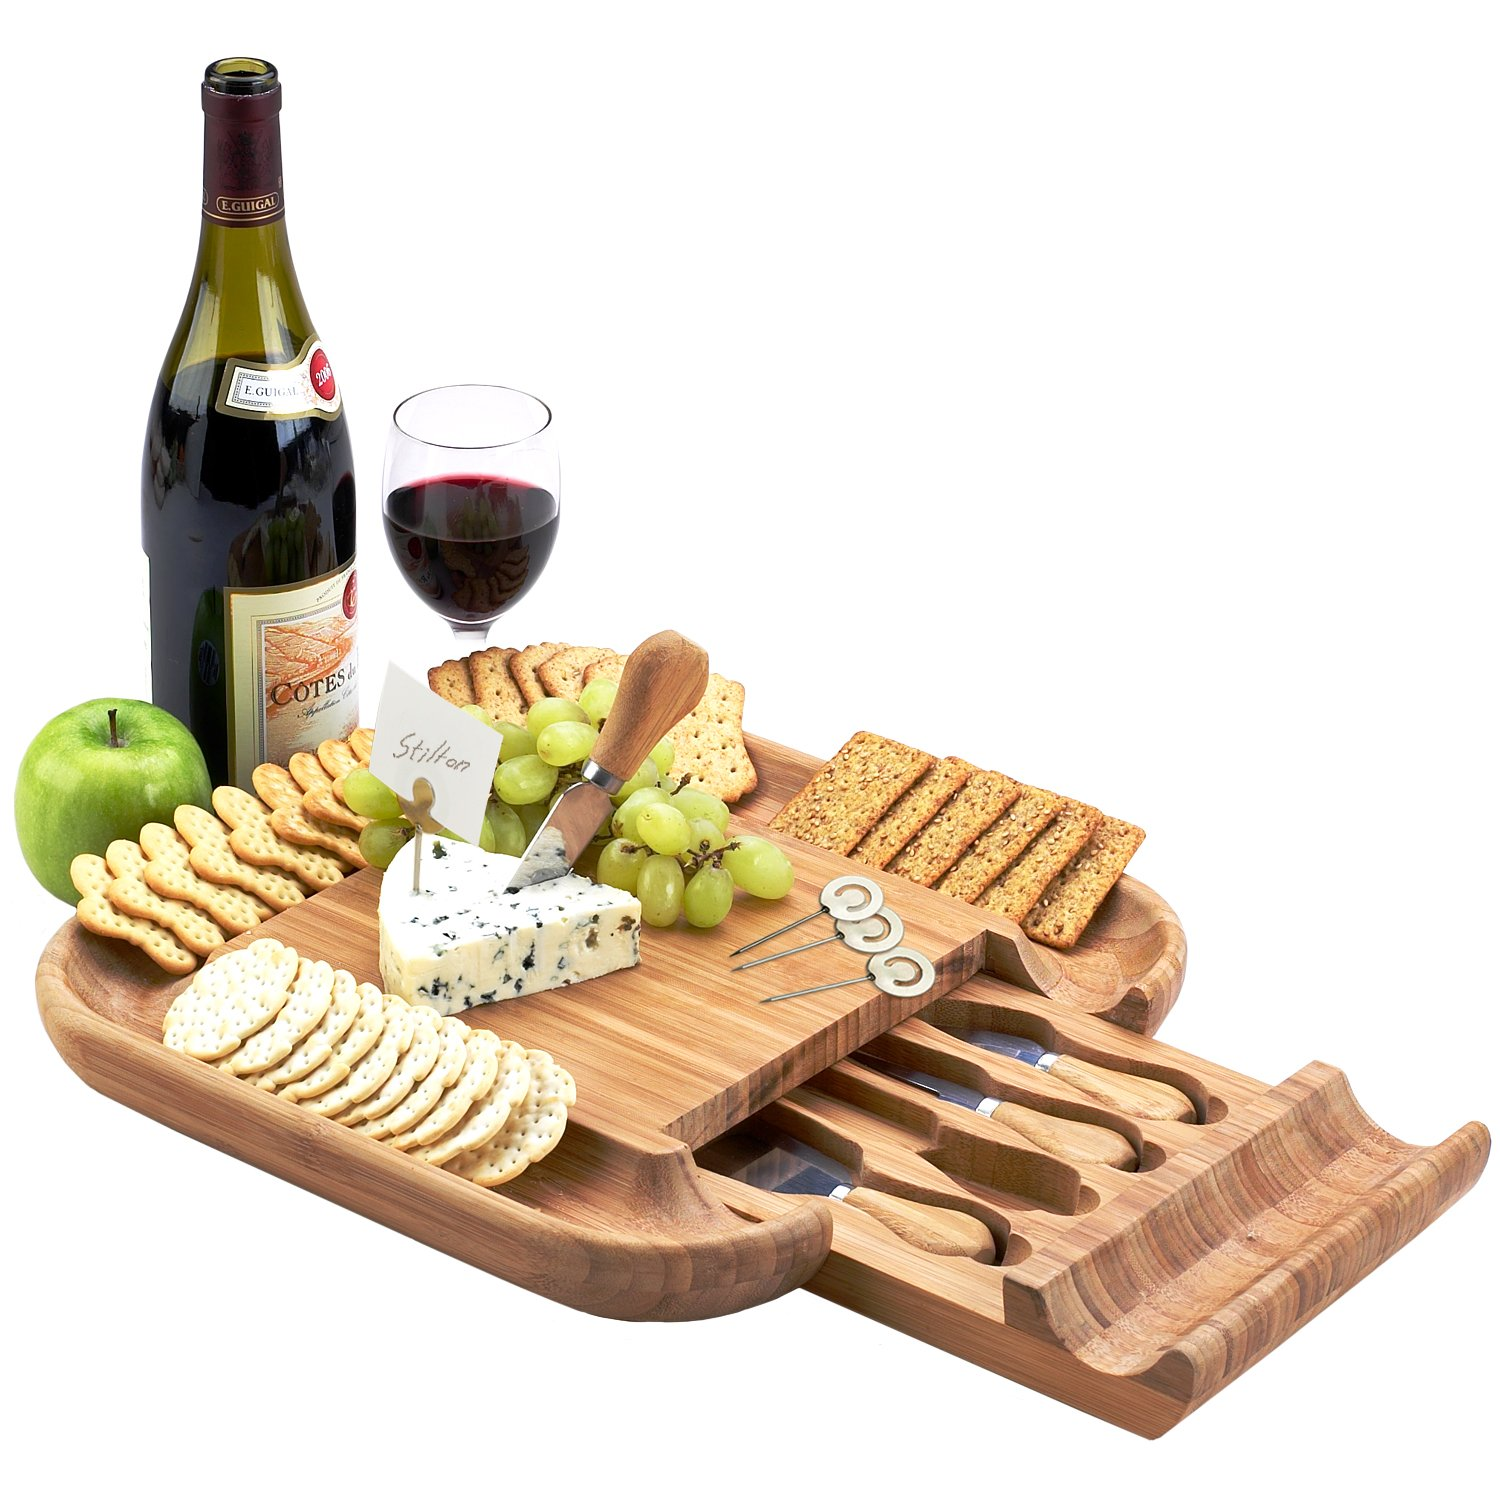 Picnic at Ascot Bamboo Cutting Board for Cheese & Charcuterie with Knife Set & Cheese Markers- Designed & Quality Checked in the USA by Picnic at Ascot